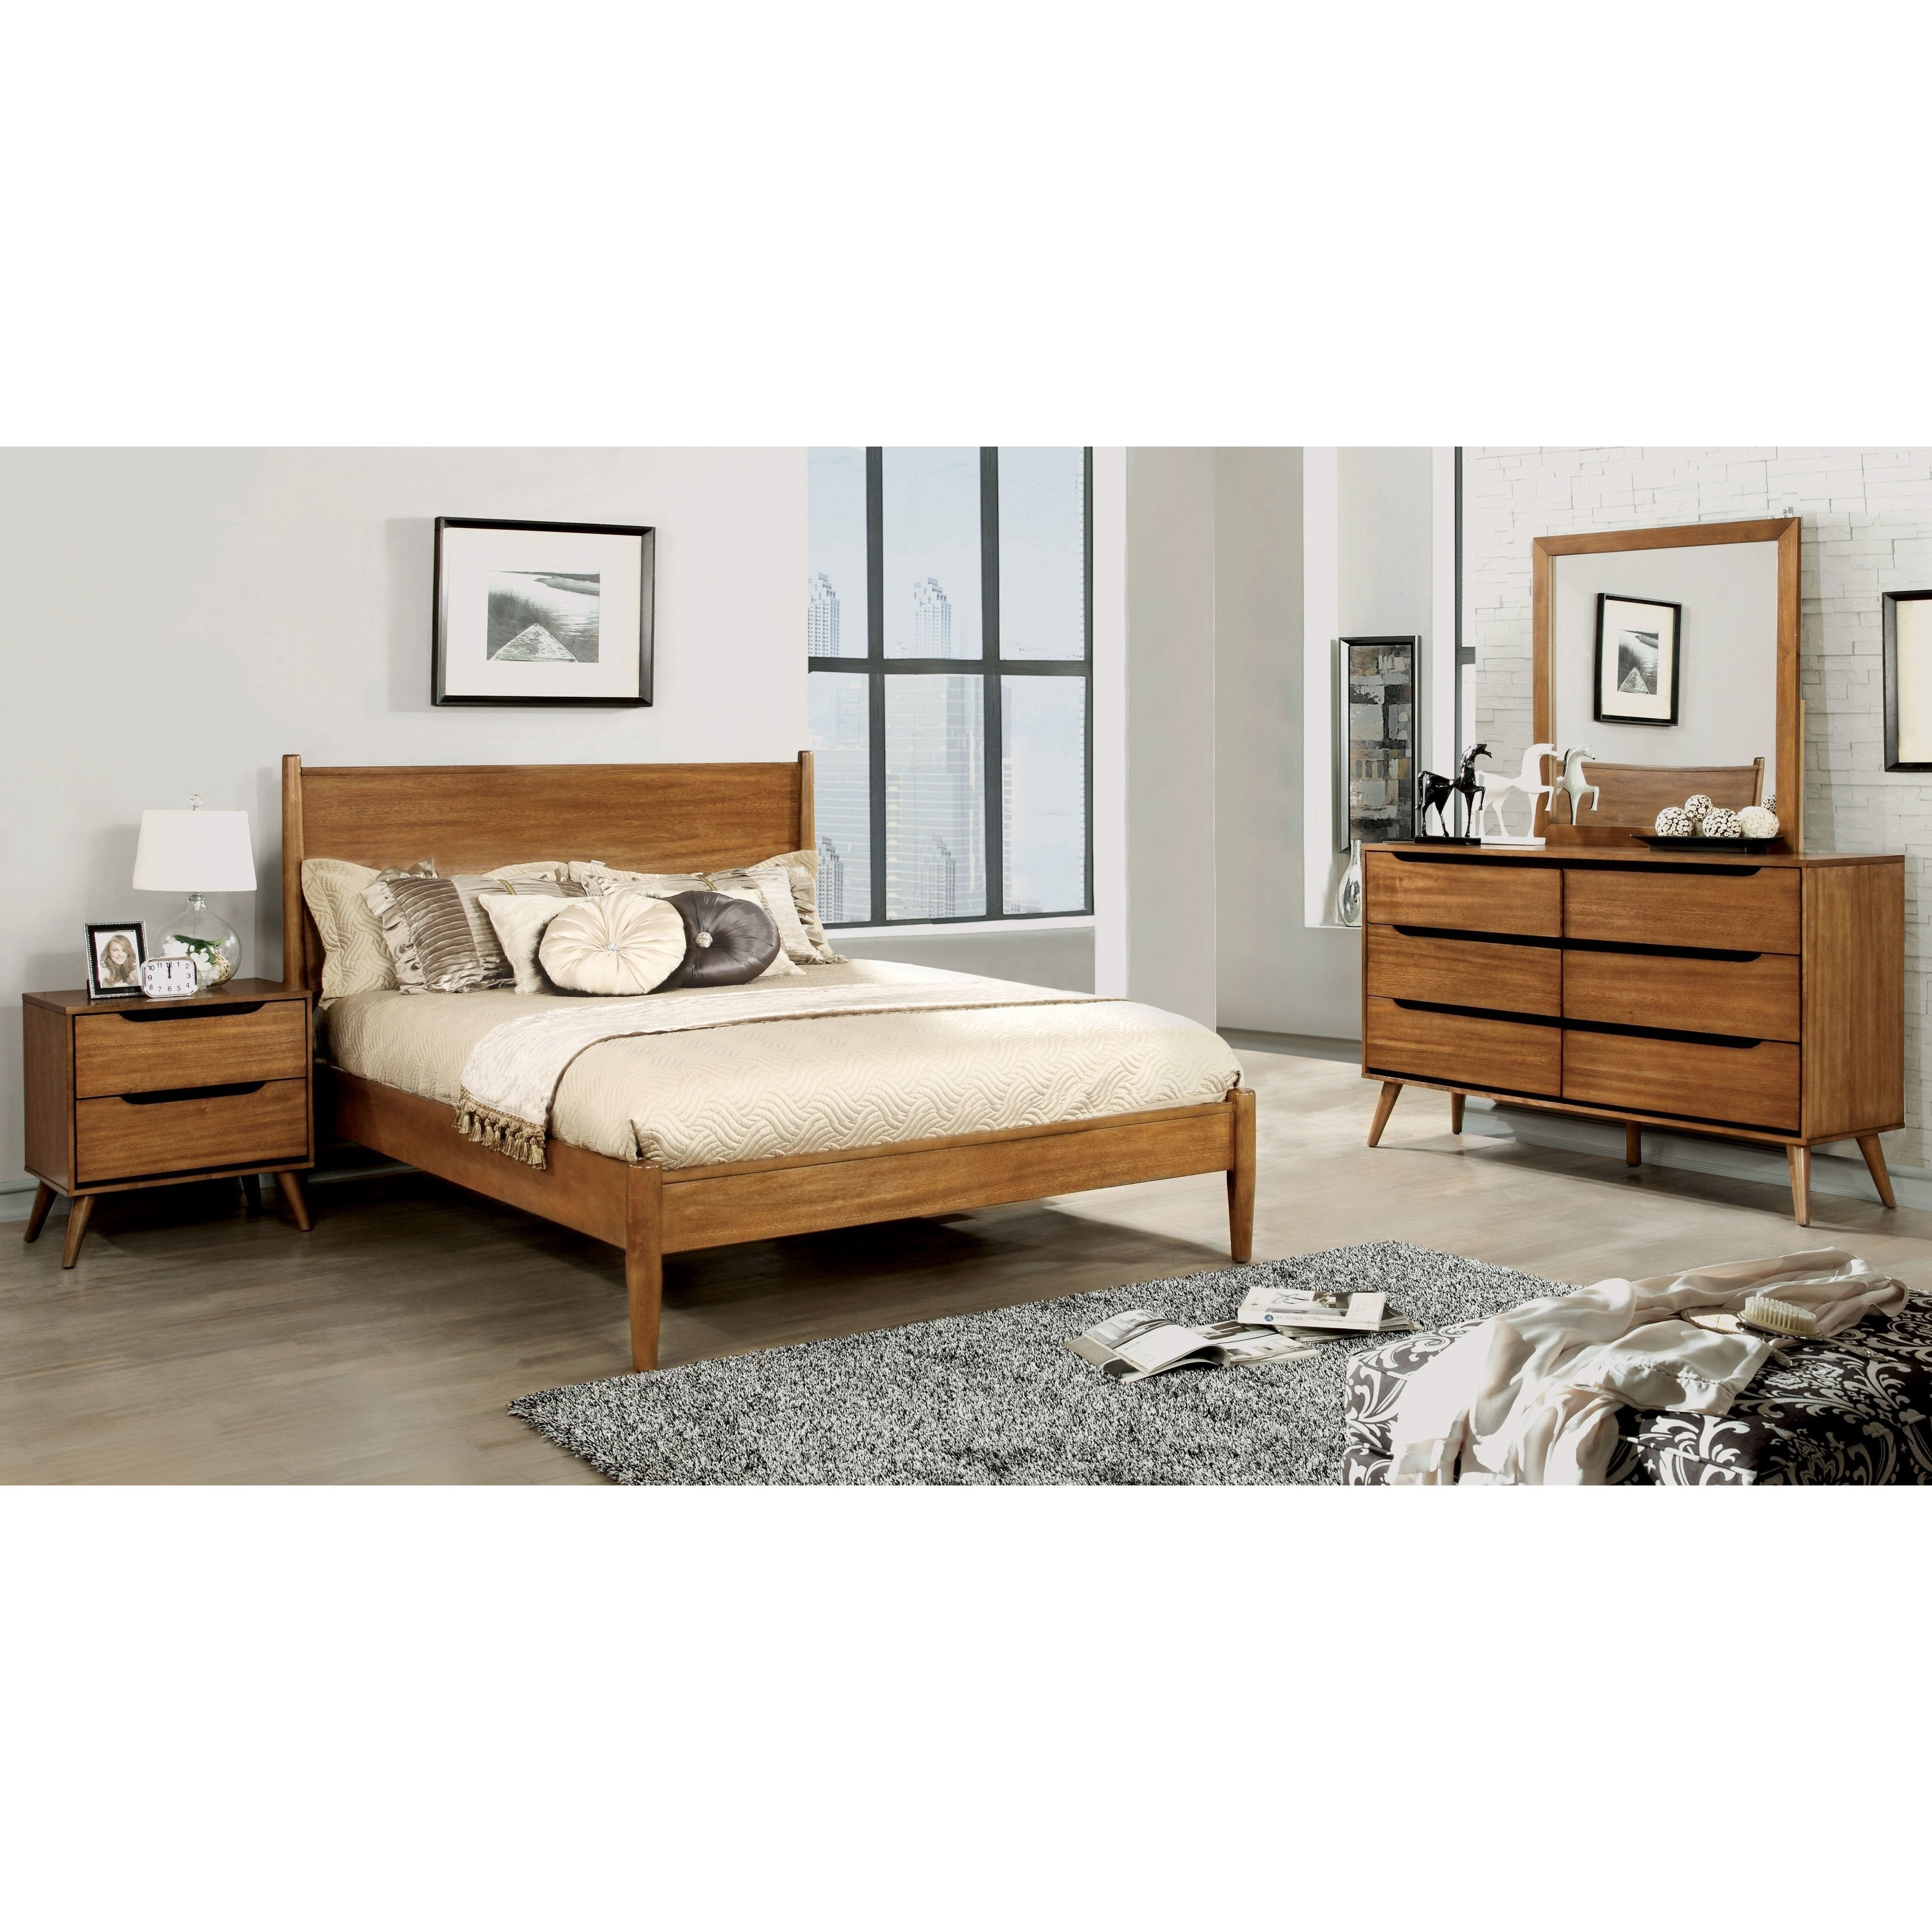 Furniture of America Fopp Mid-century Oak 4-piece Bedroom Set